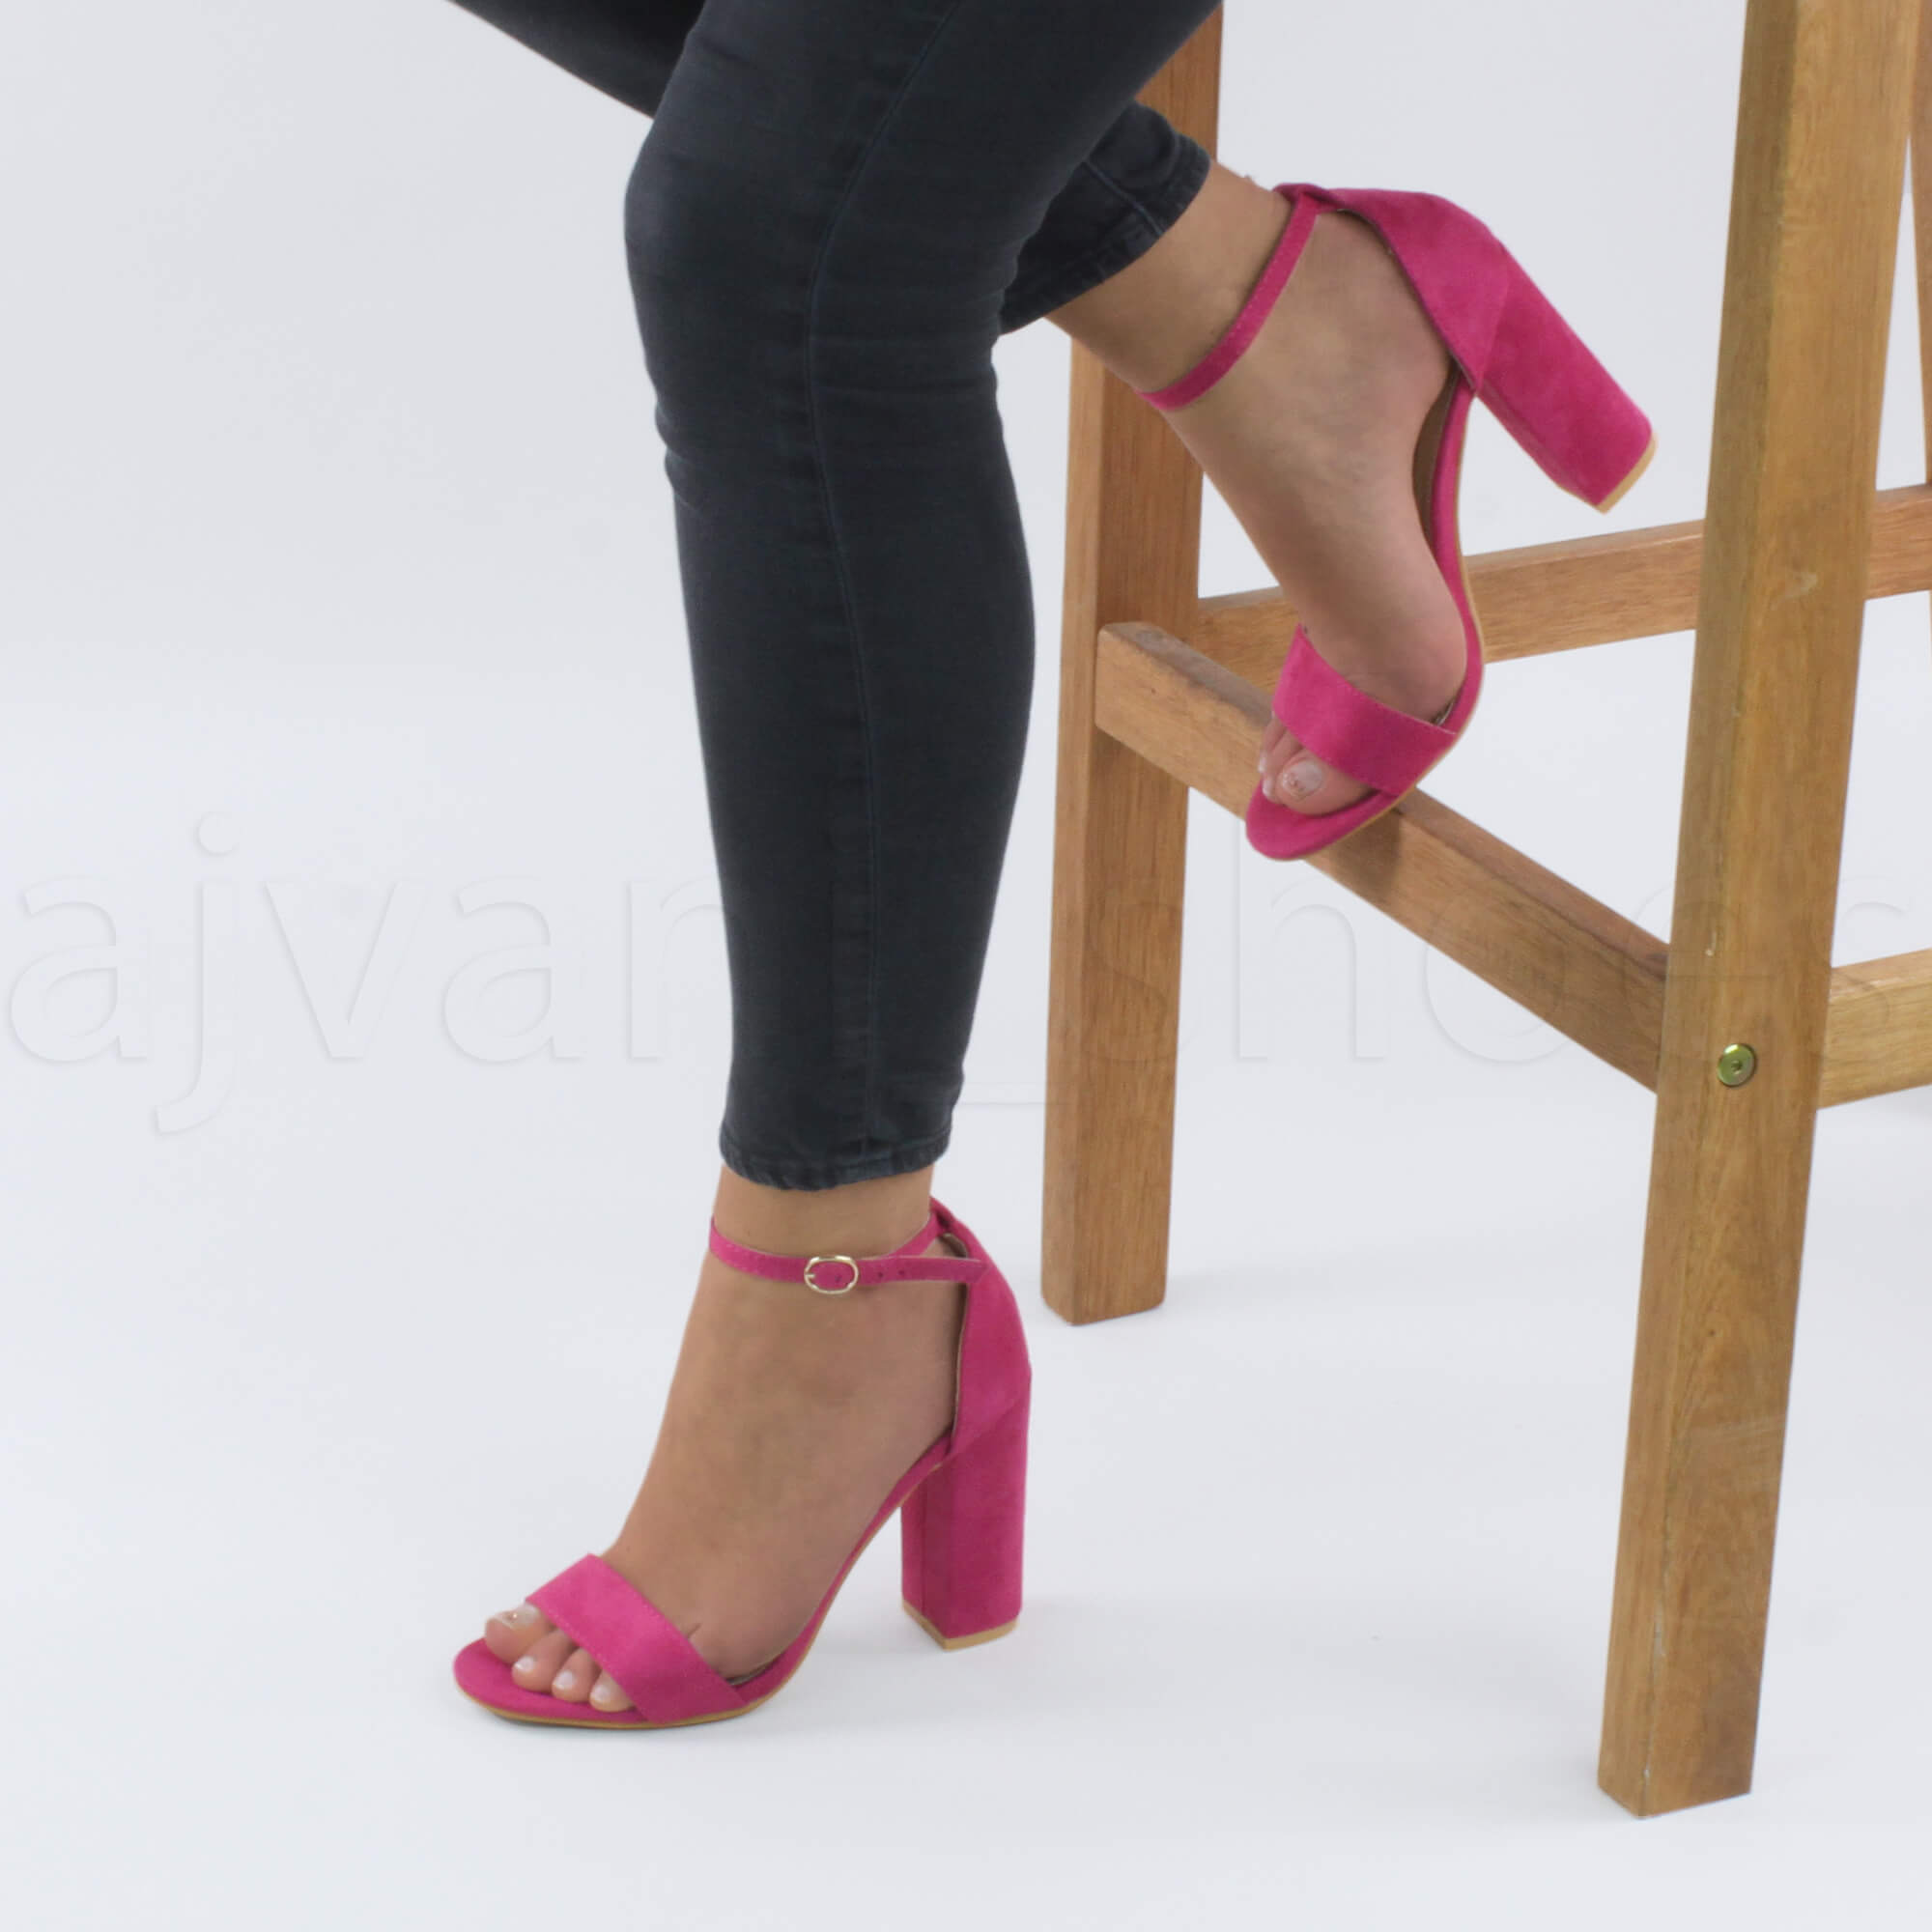 WOMENS-LADIES-BLOCK-HIGH-HEEL-ANKLE-STRAP-PEEP-TOE-STRAPPY-SANDALS-SHOES-SIZE thumbnail 62